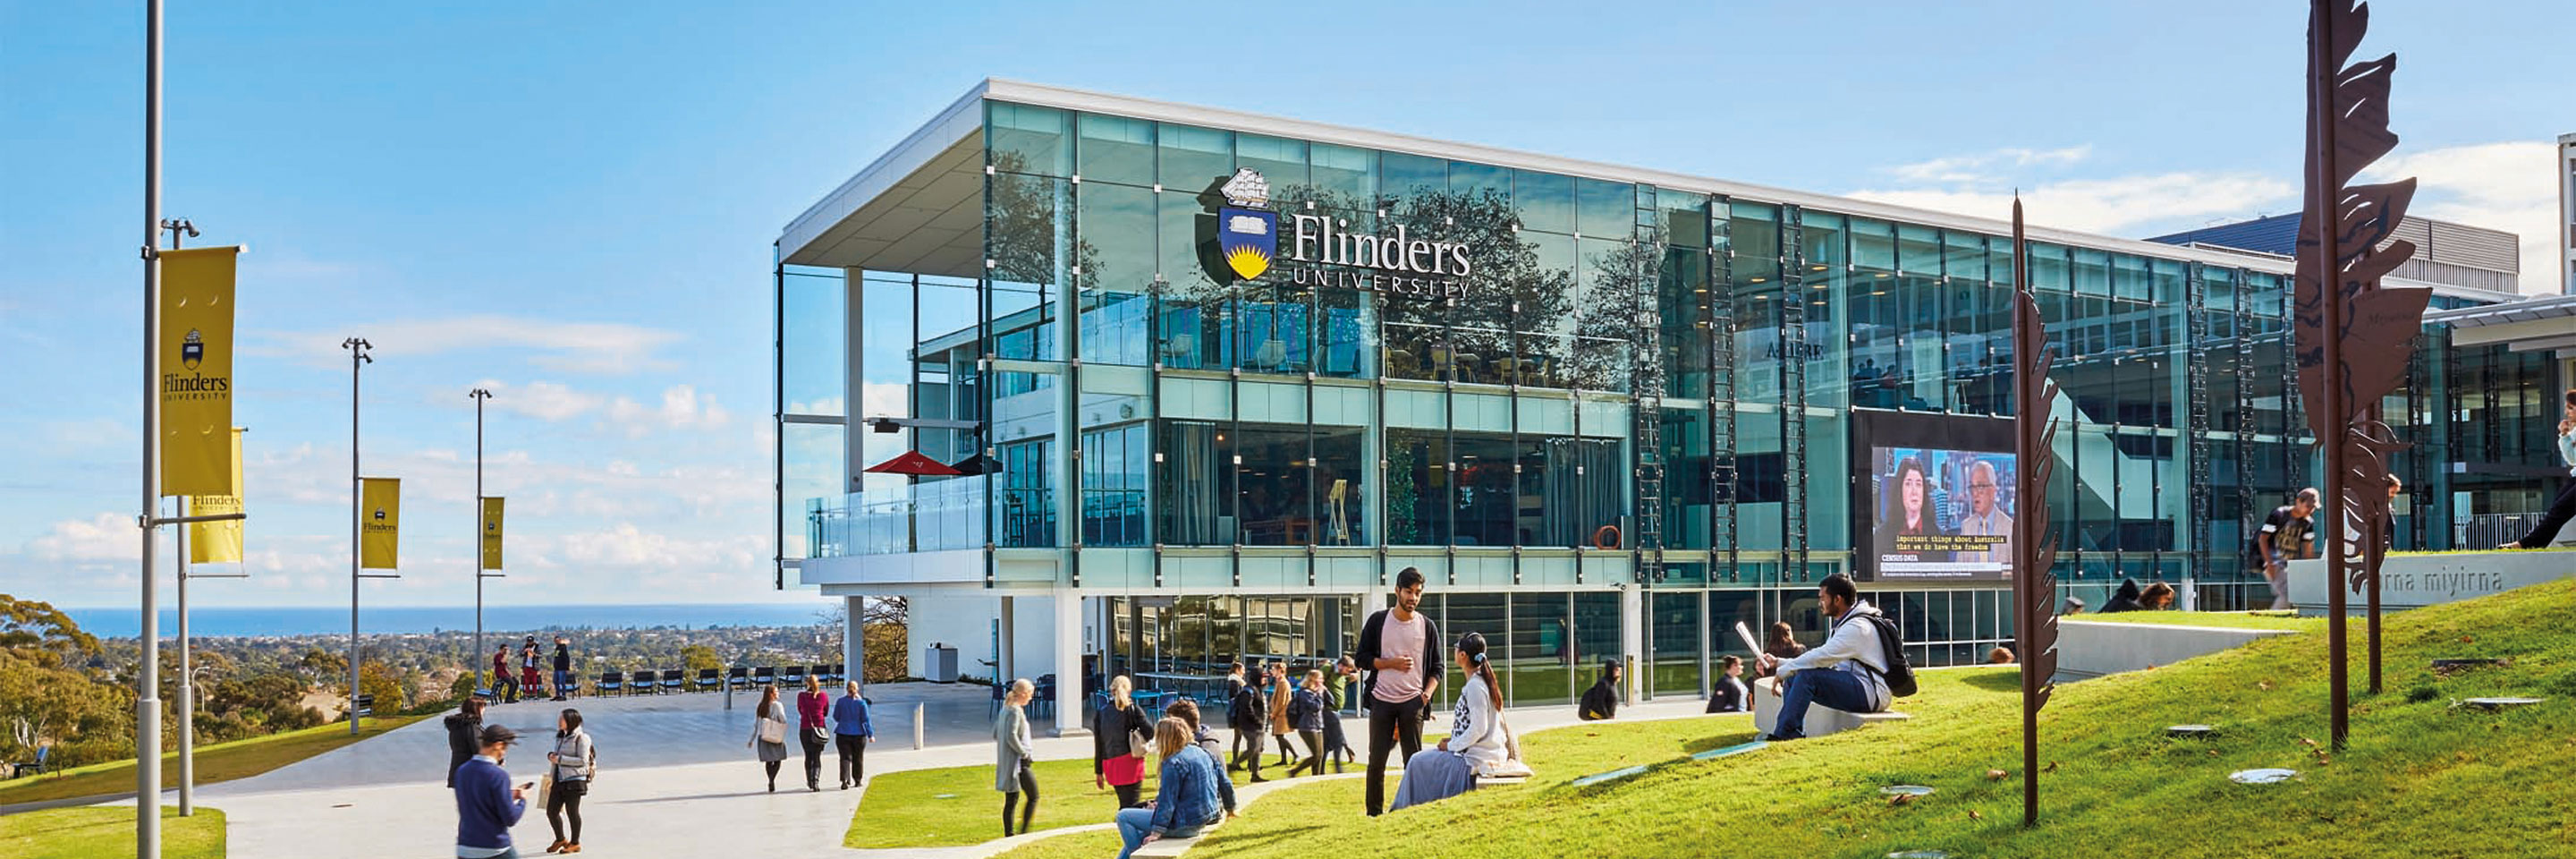 The Australia Awards are prestigious international scholarships that provide you with high-quality educational experiences at world-class universities (Photo courtesy of Flinders University).